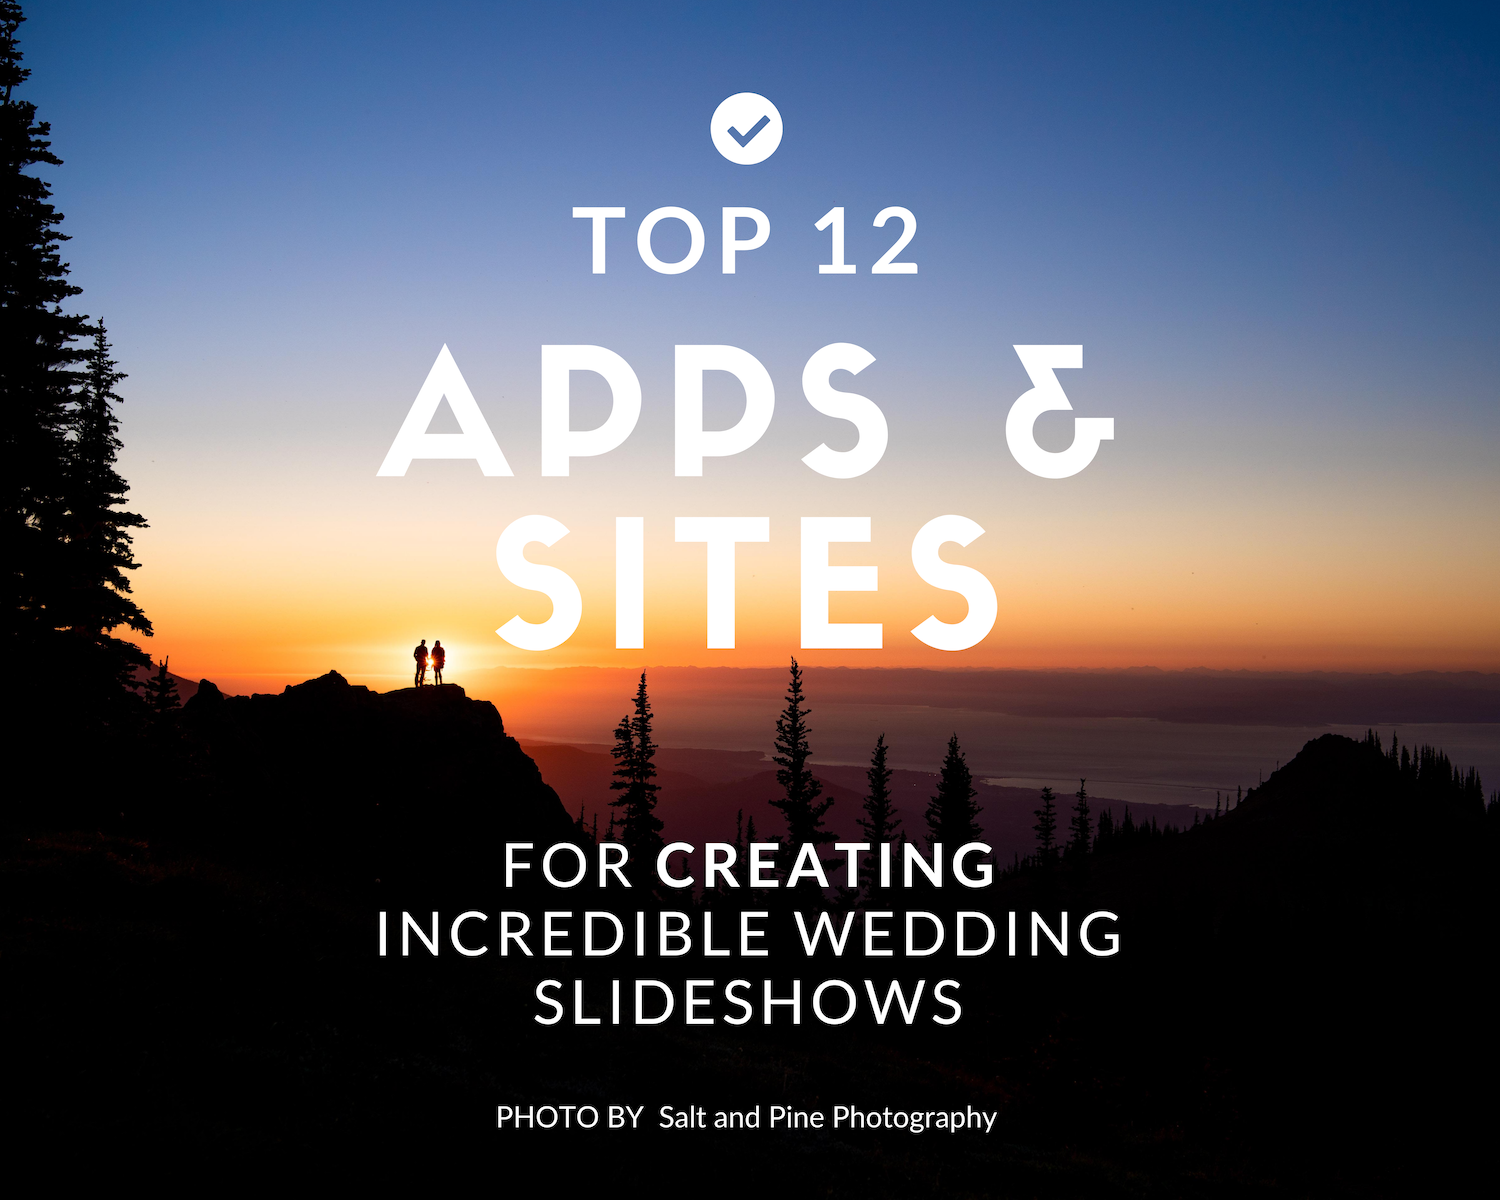 Create & Share Wedding Slideshows